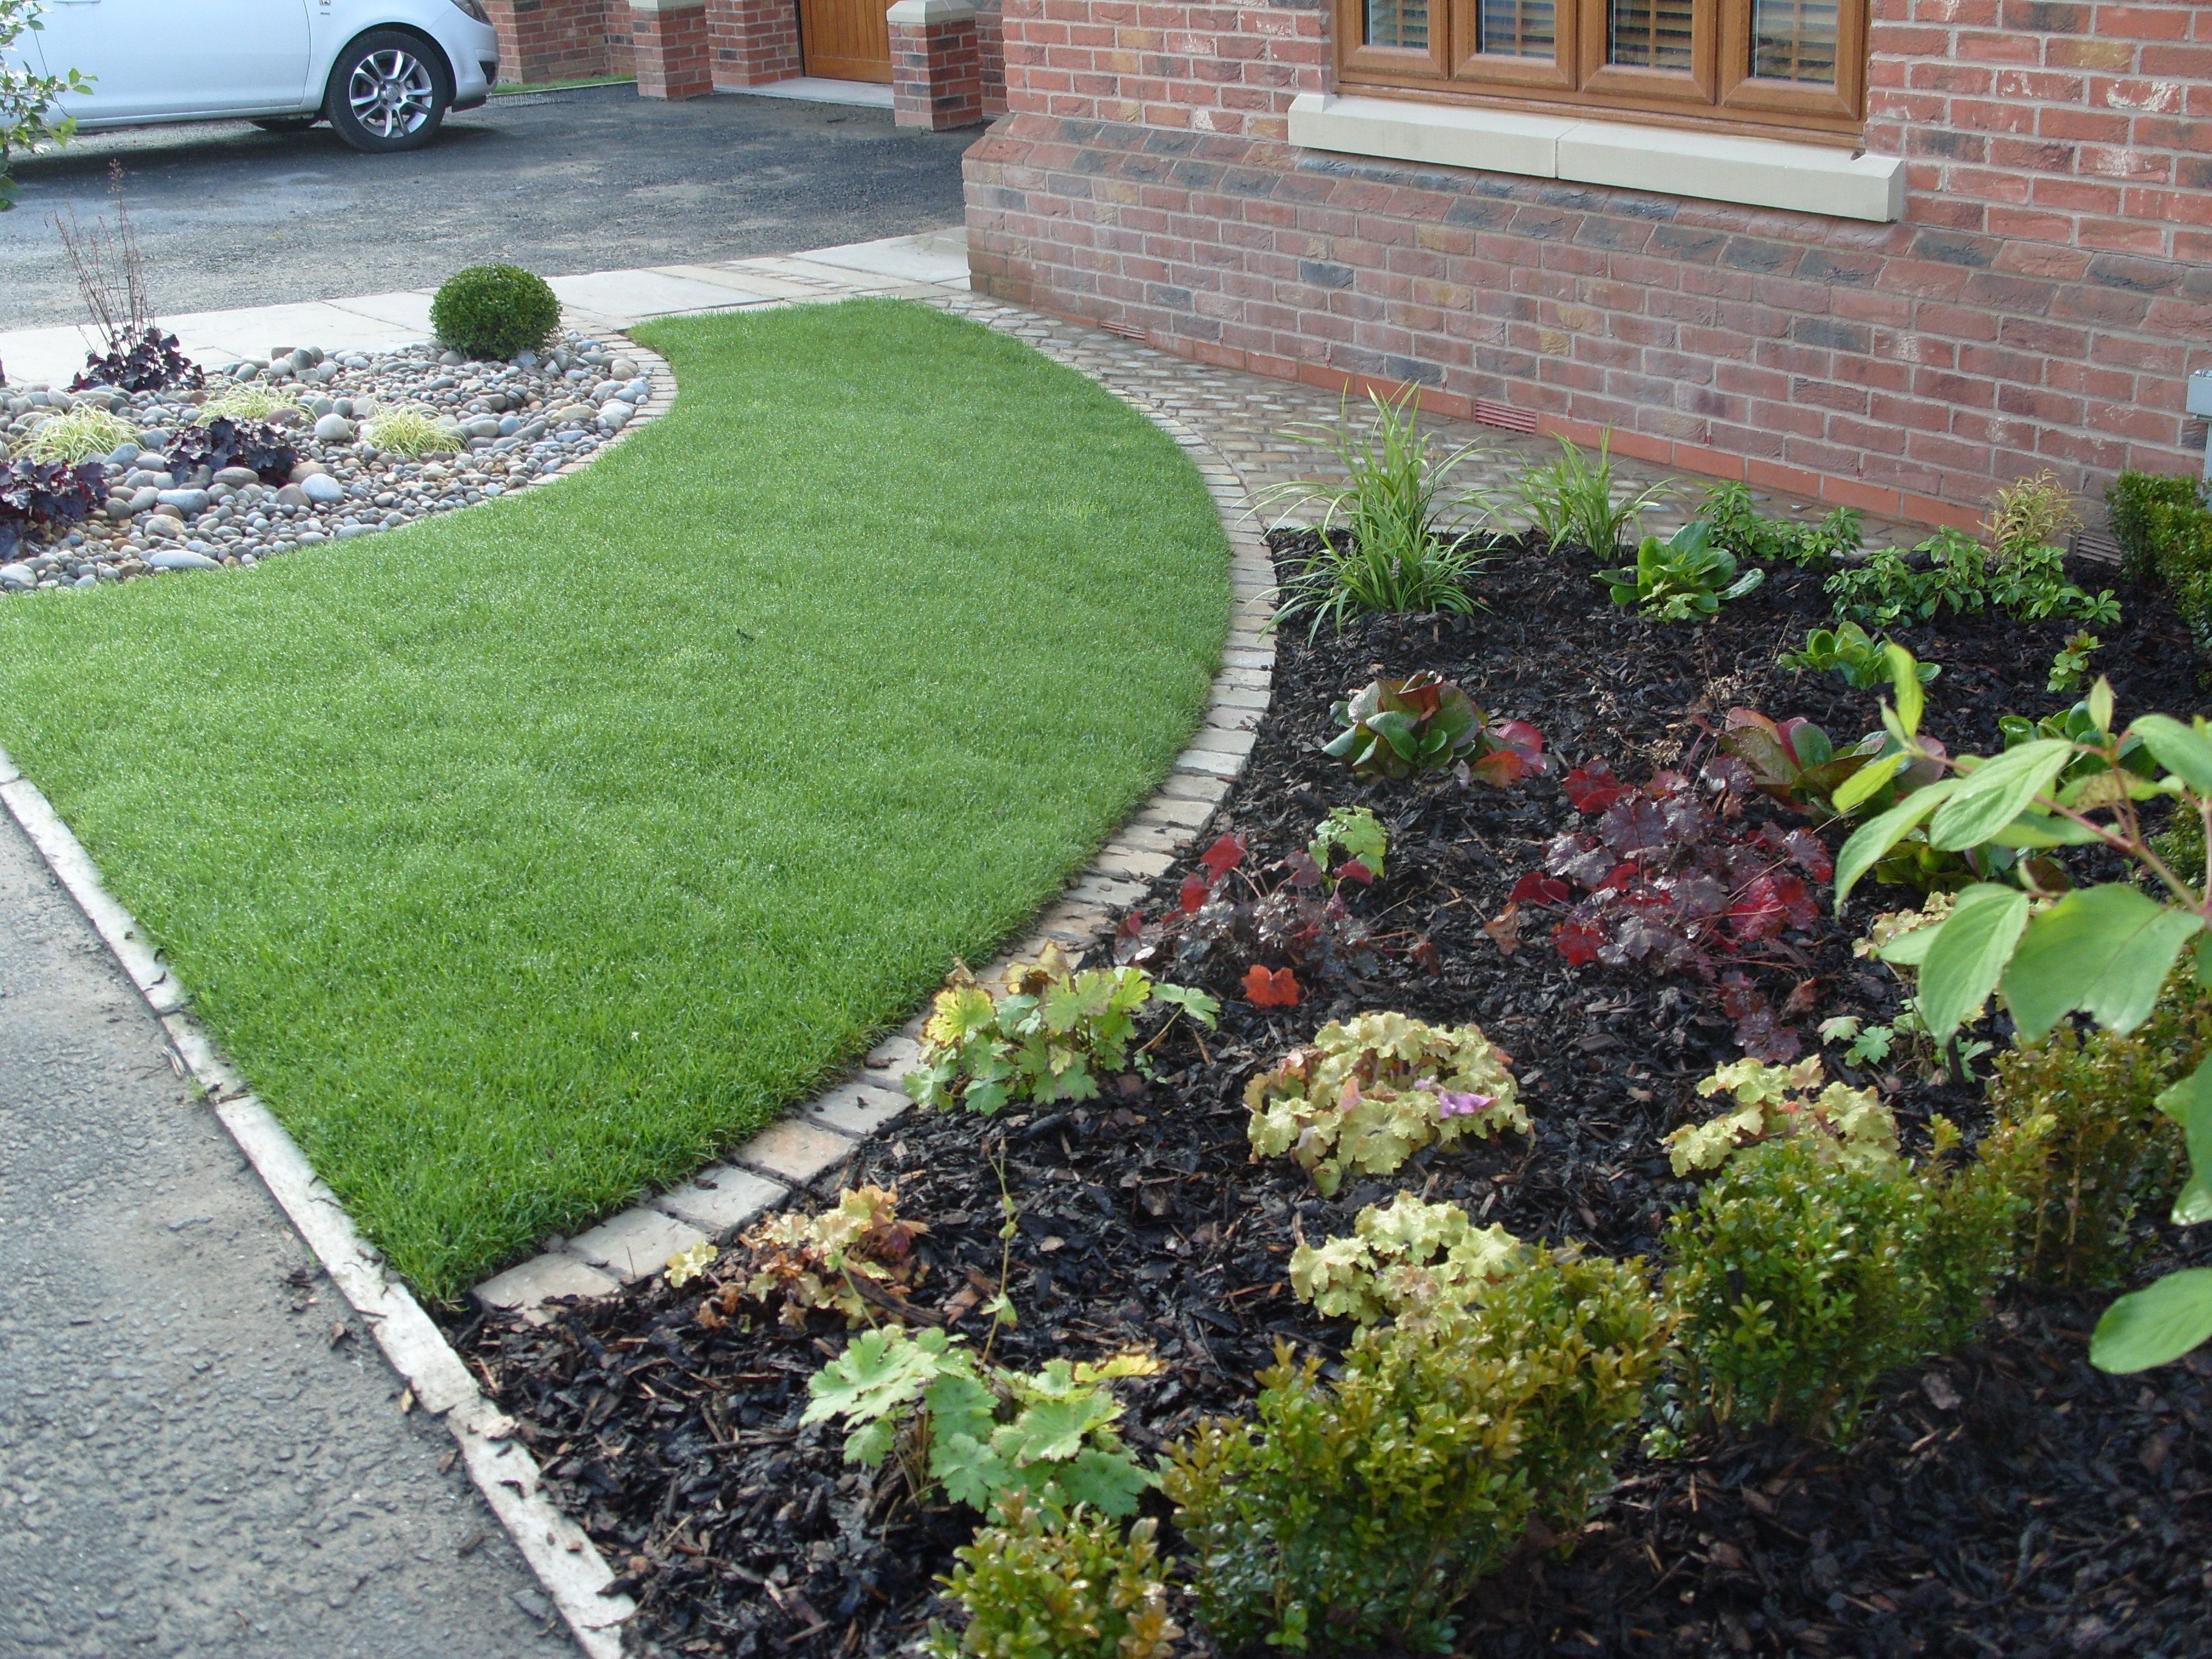 Front garden on a new build estate angie barker trading Small front lawn garden ideas